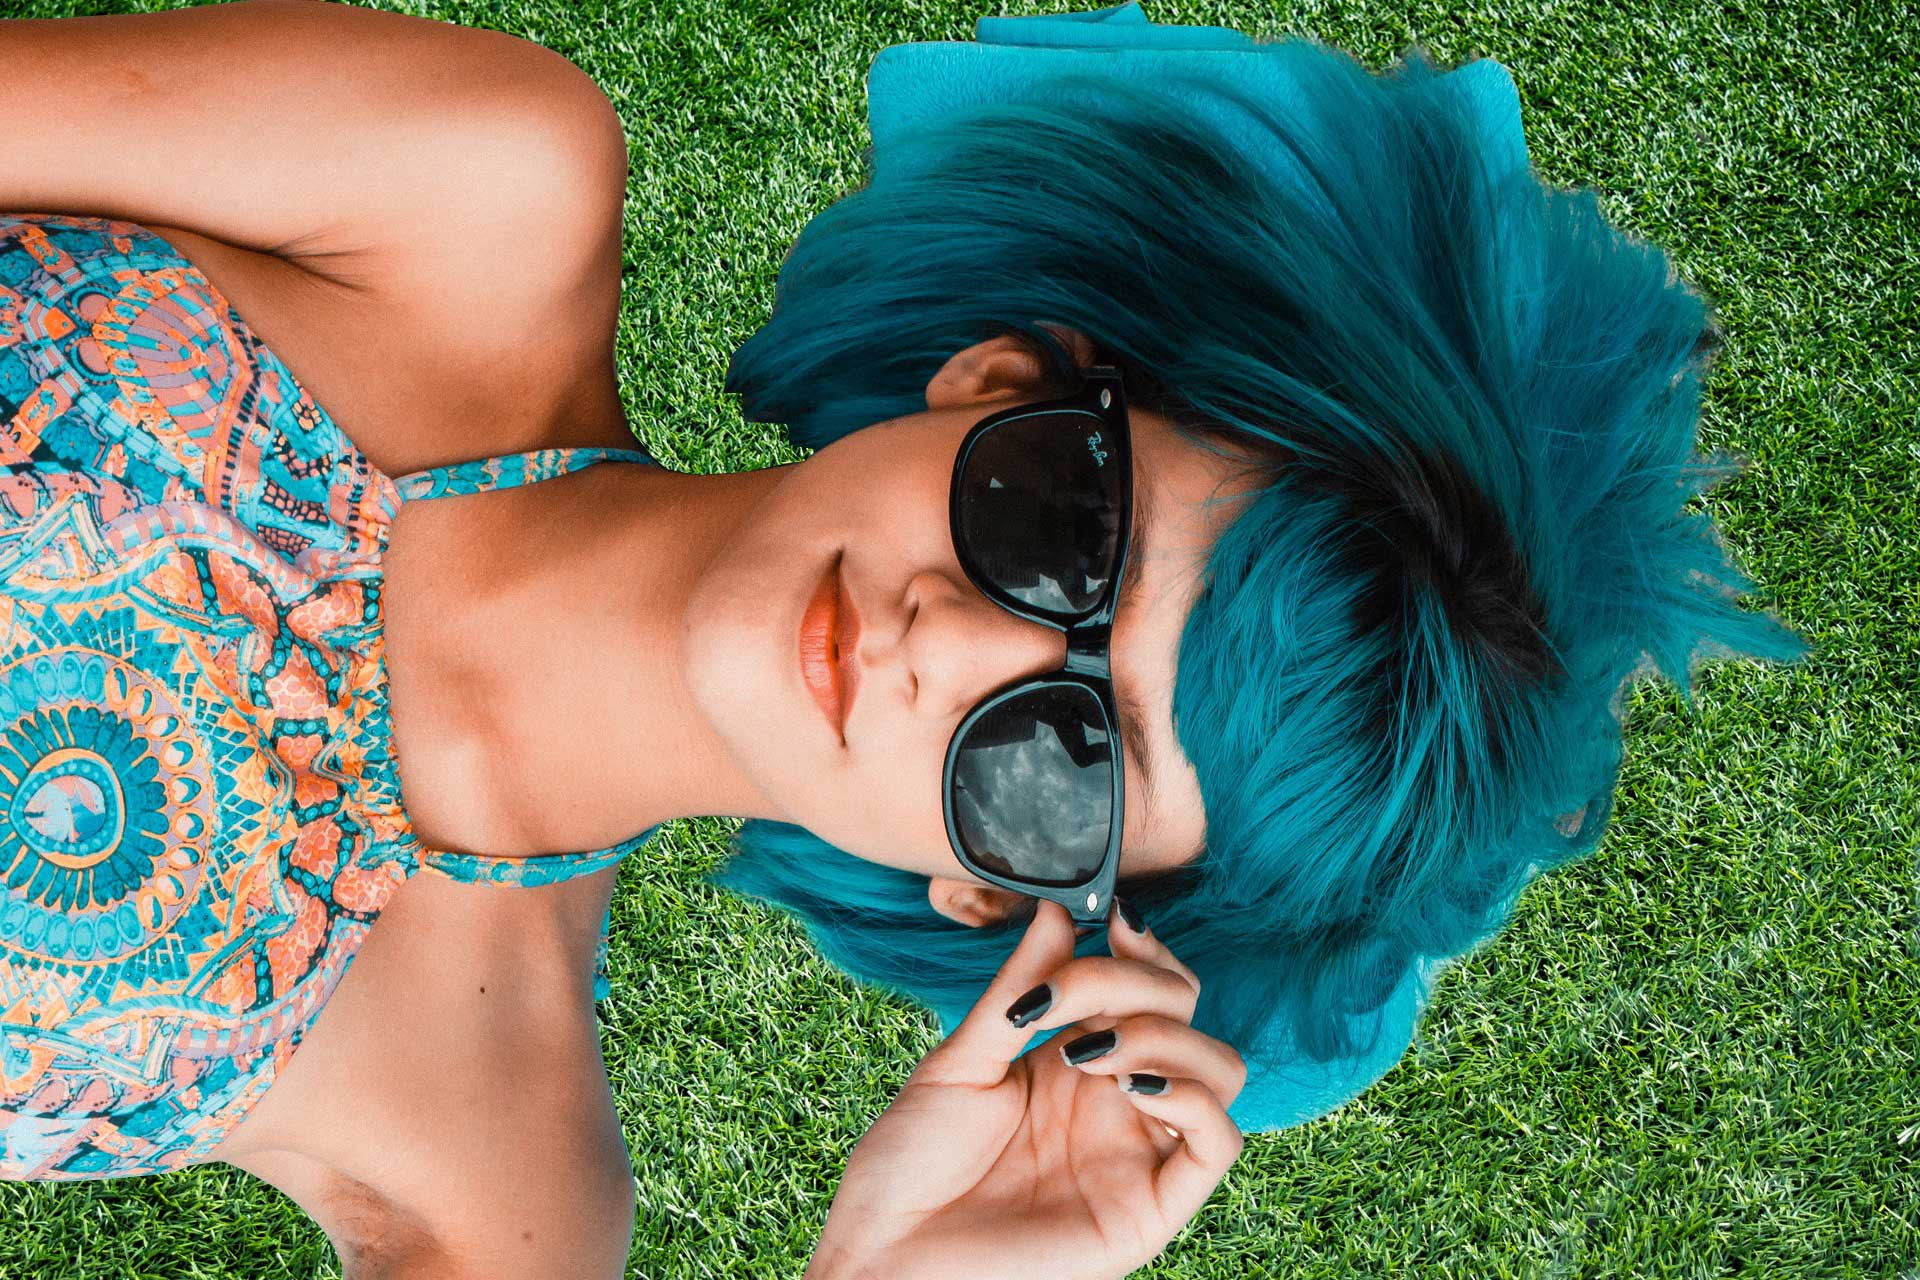 Beautiful woman in dark glasses with blue hair on artificial grass relax